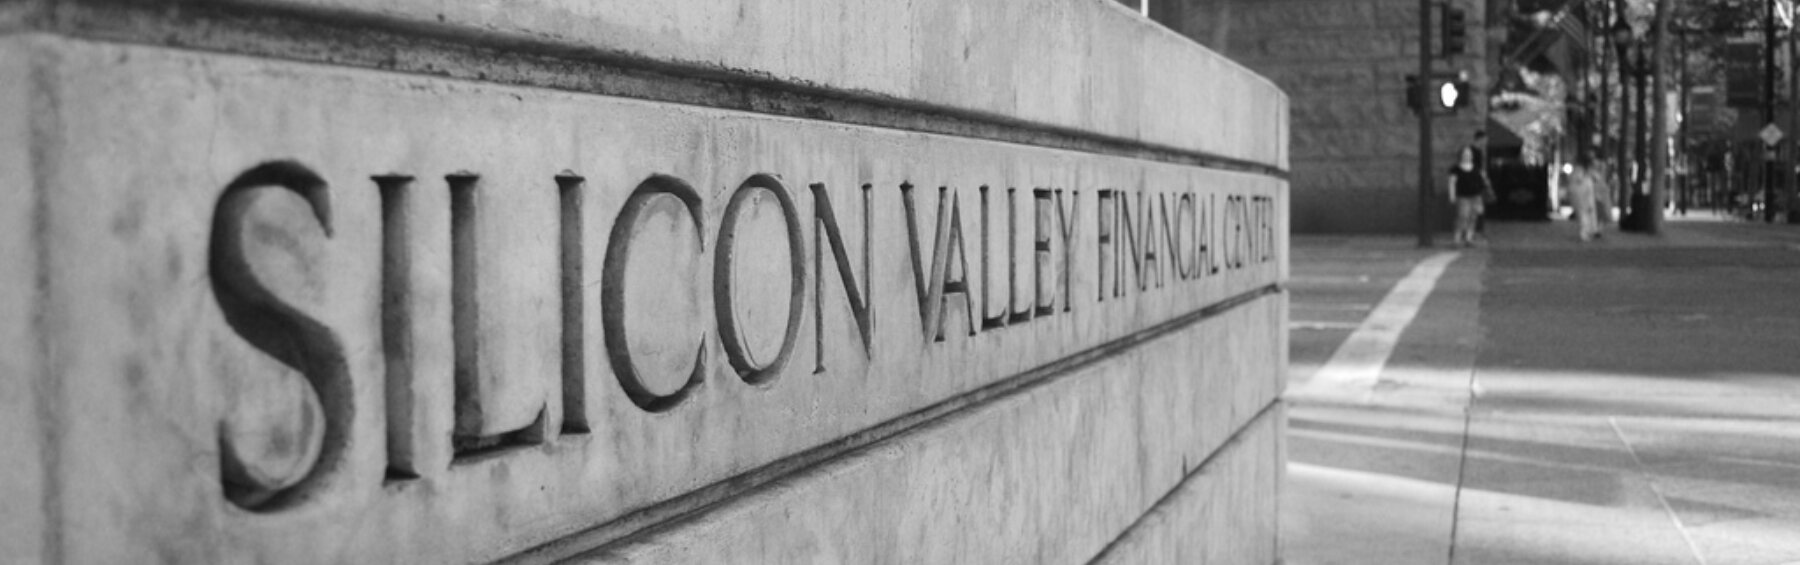 Silicon-Valley-wall